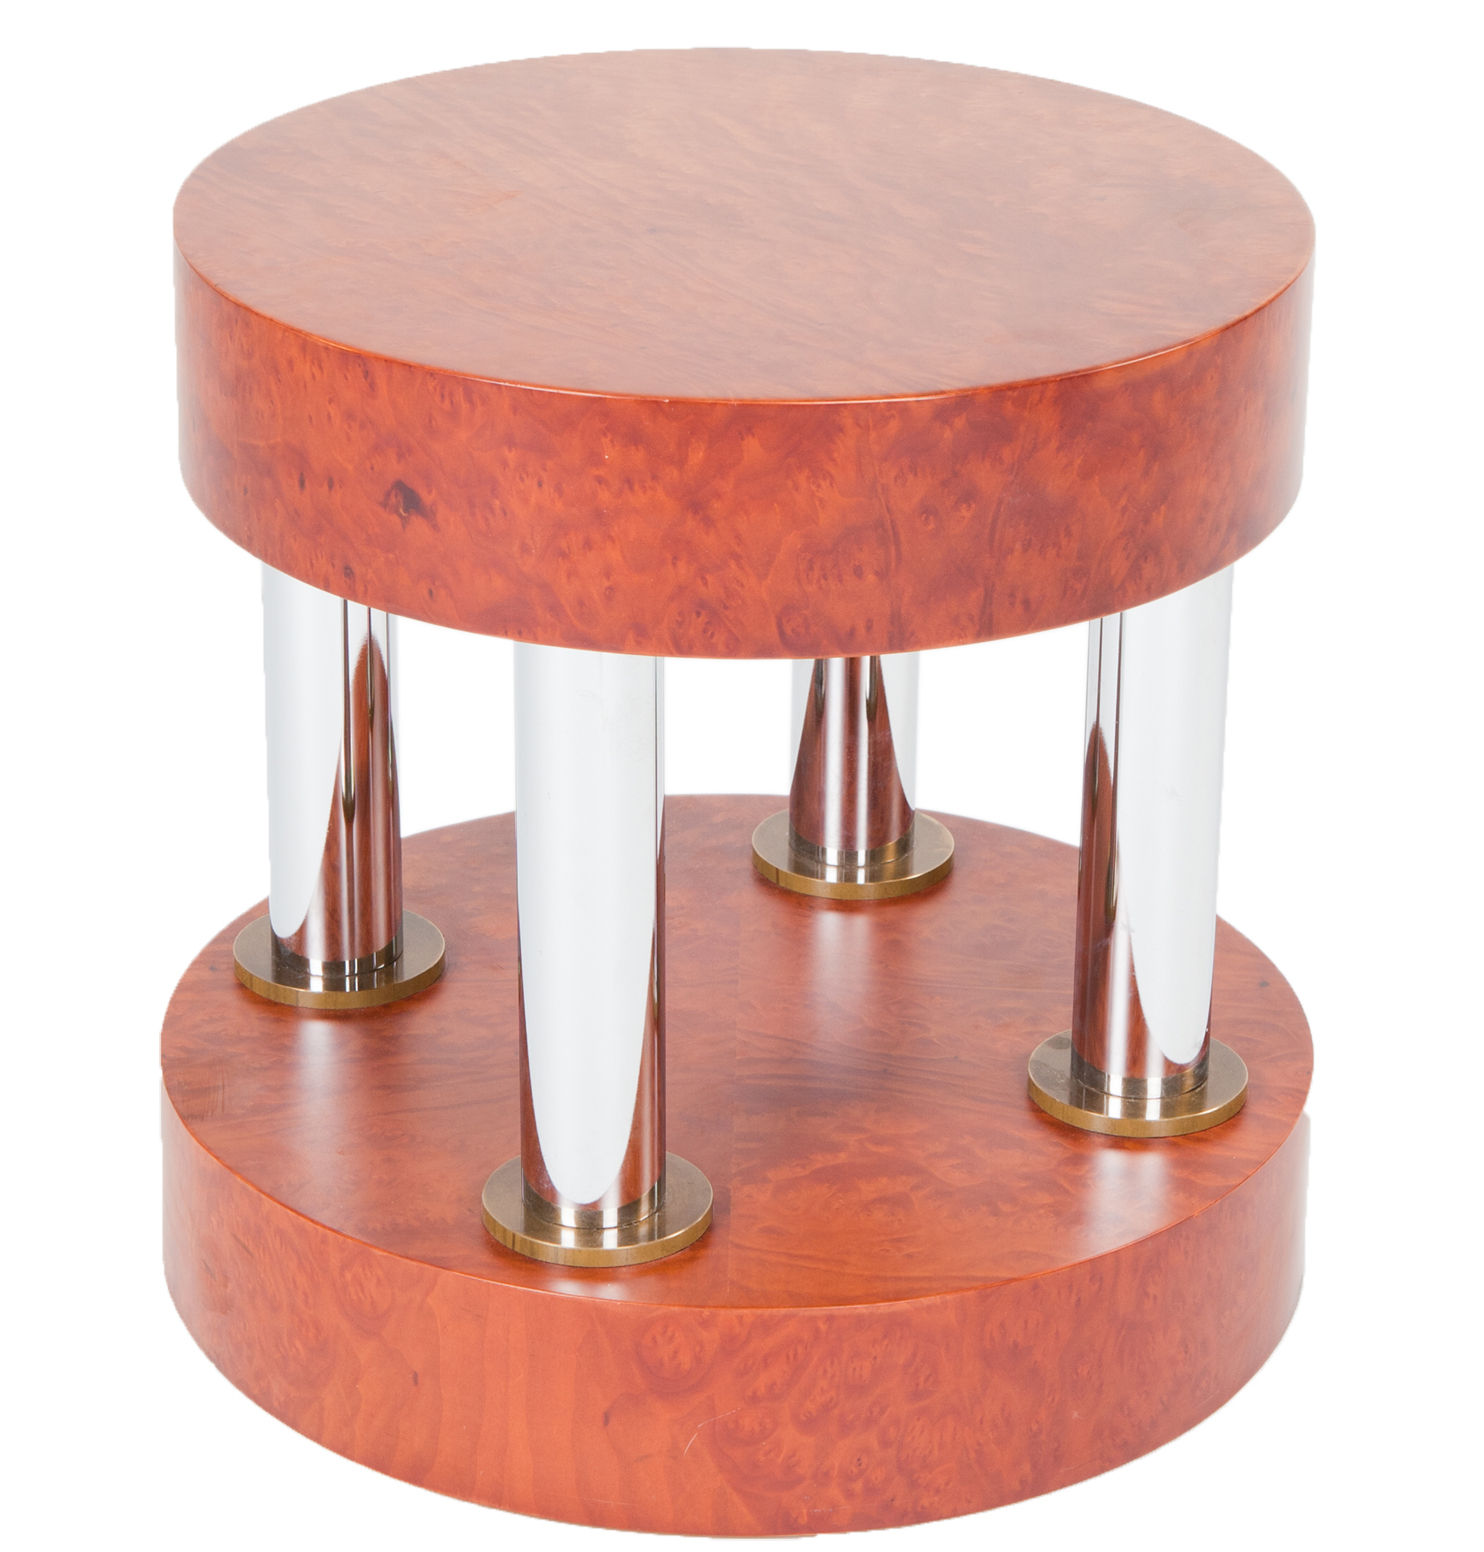 Furniture - Coffee Tables - Hyatt End table by Memphis Milano - Brown / White legs - Chromed metal, Walnut burl plated wood